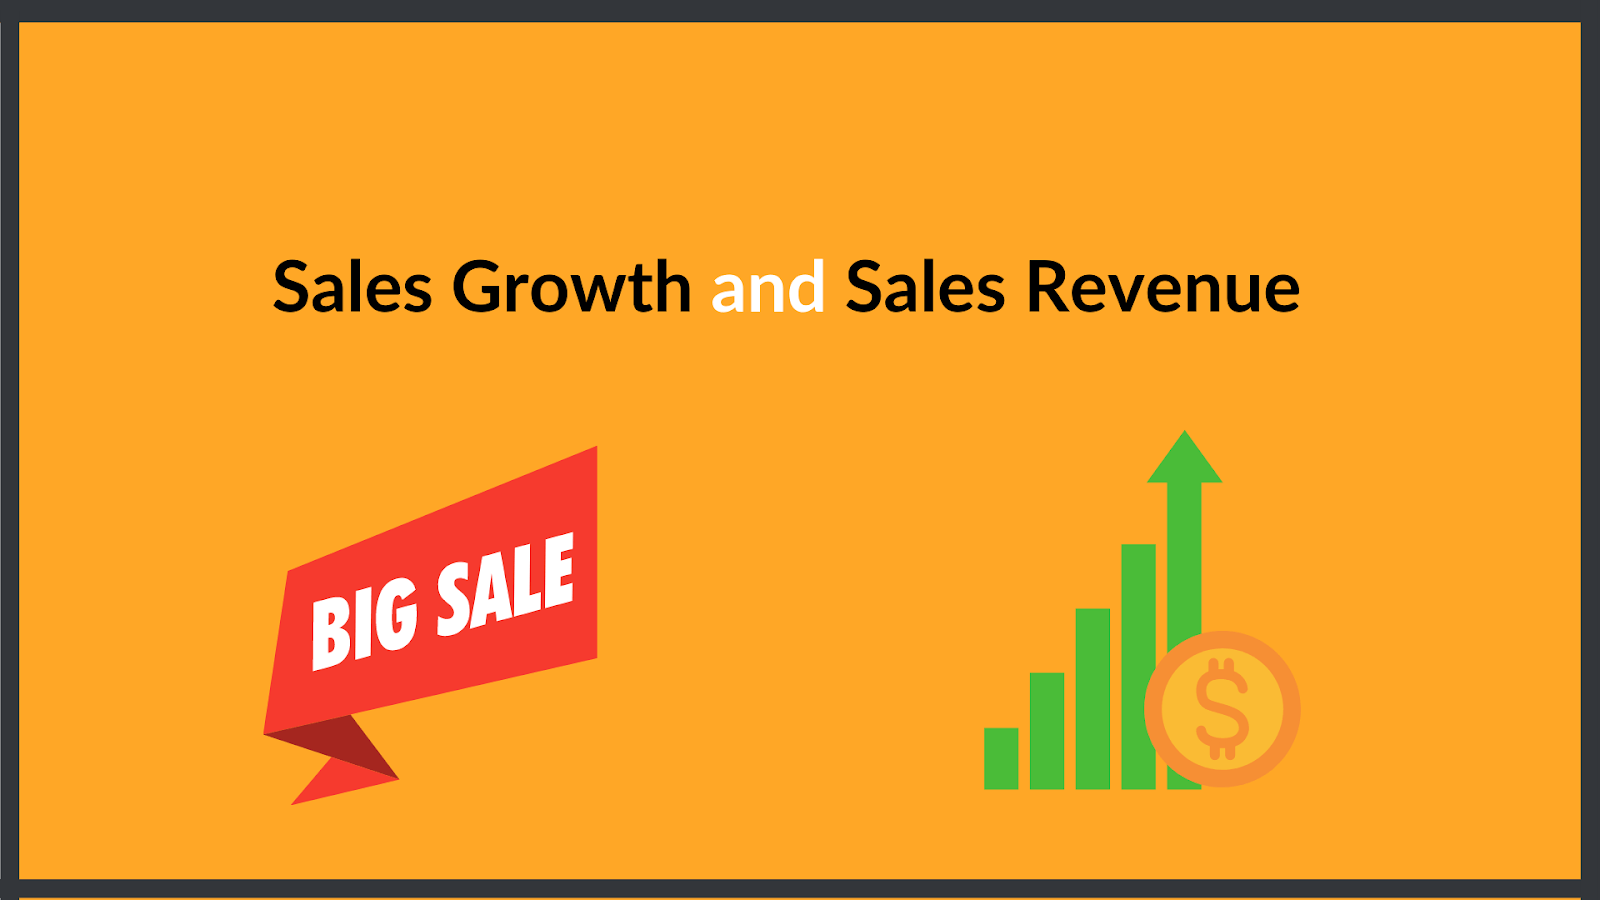 How to drive sales growth and sales revenue